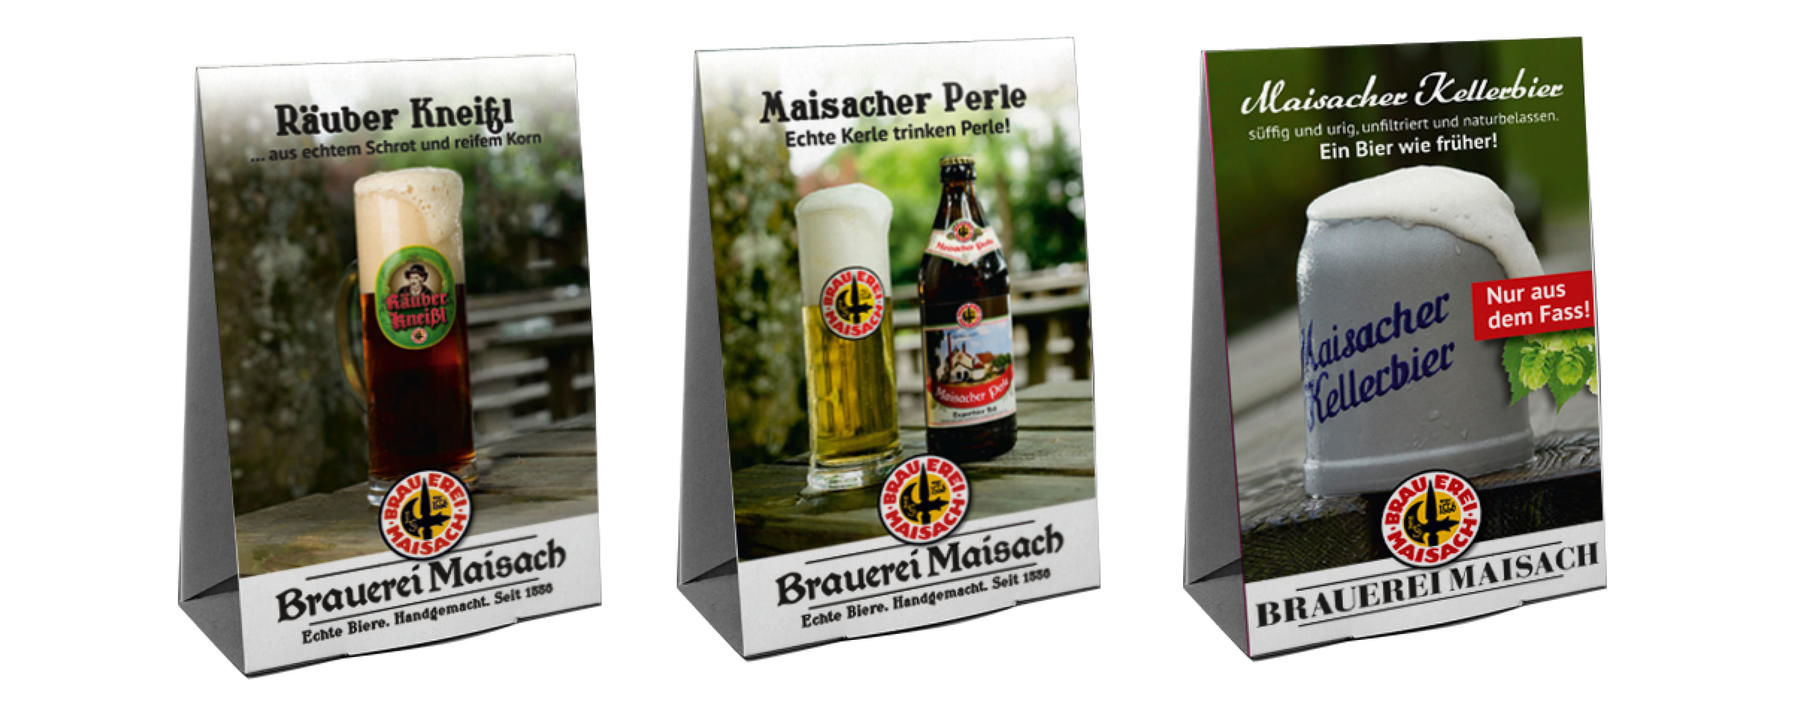 Brauerei Maisach, Corporate Design, Werbemittel